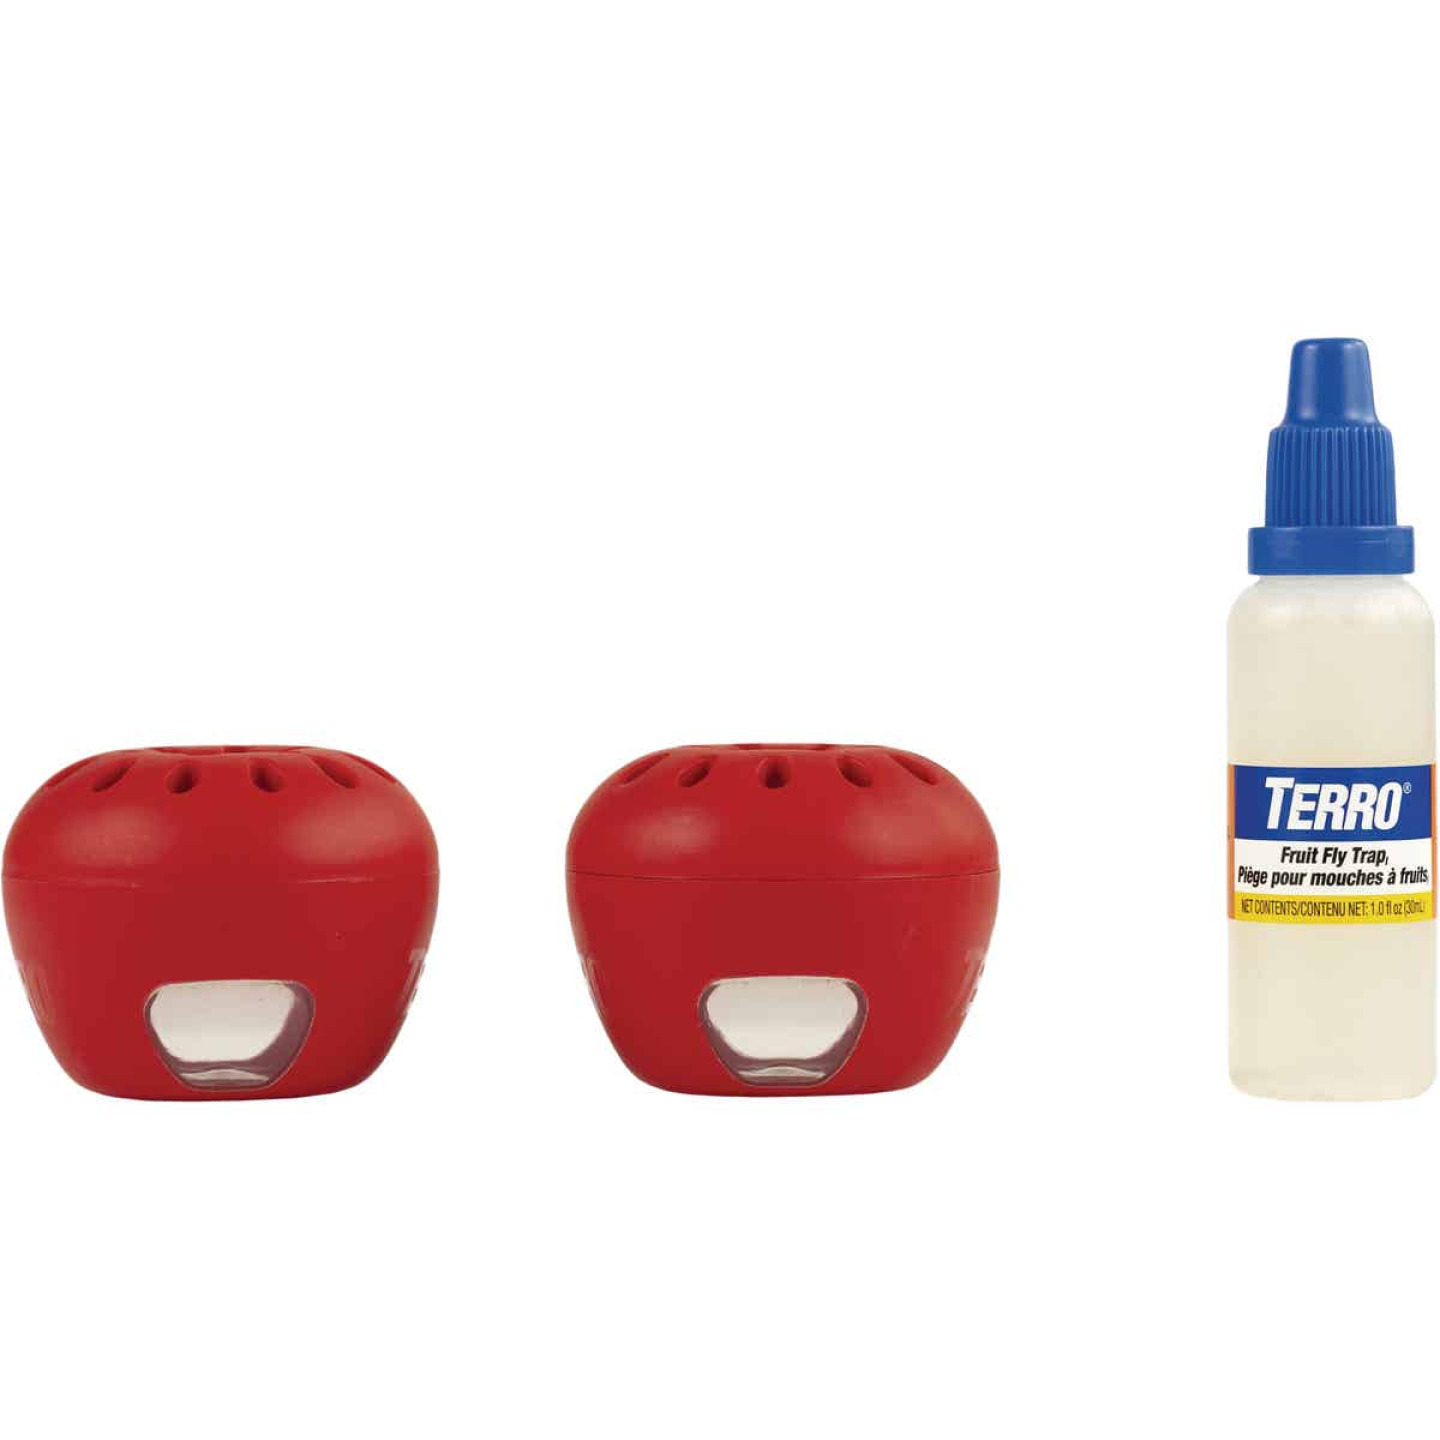 Terro Disposable Indoor/Outdoor Fly Trap (2-Pack) Image 3